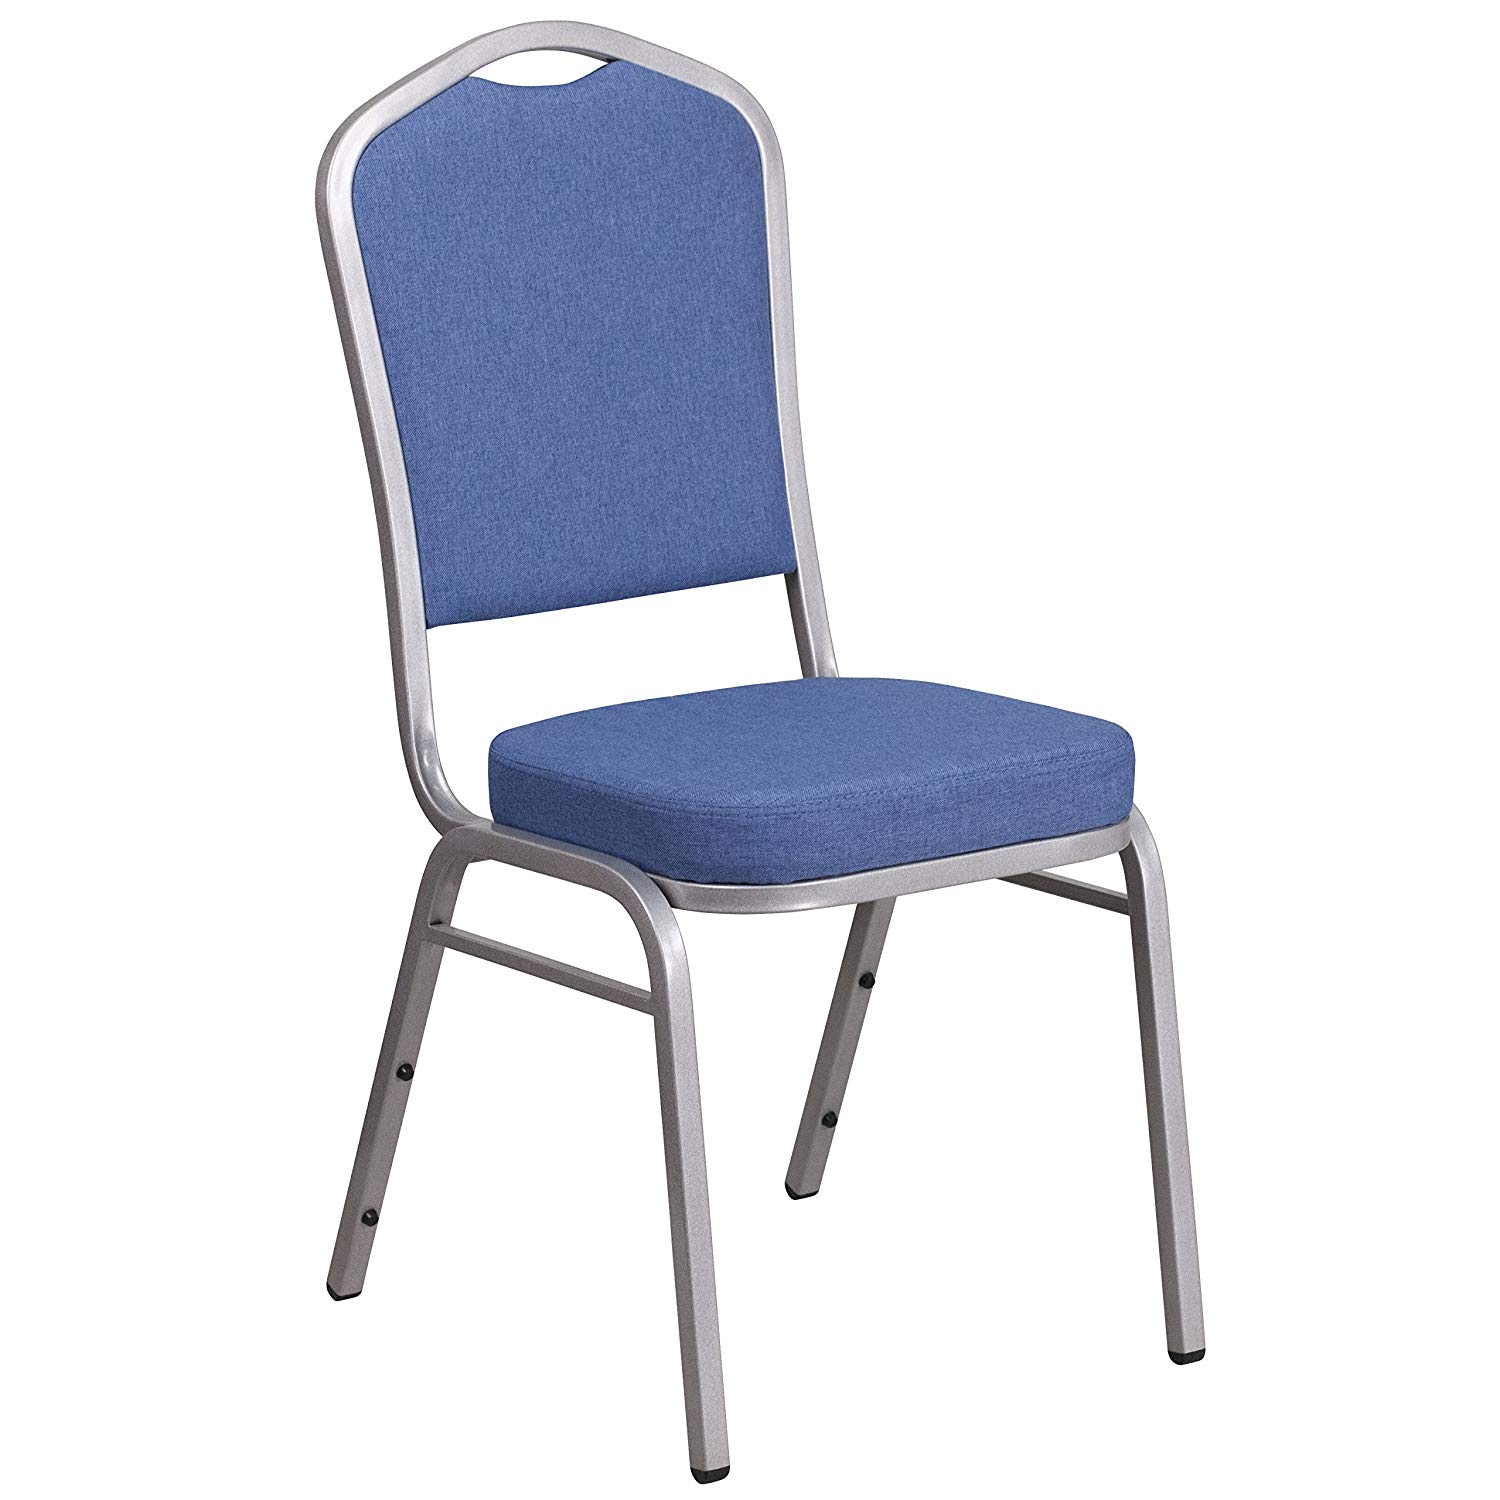 #44 - CROWN BACK BANQUET CHAIR WITH BLUE FABRIC